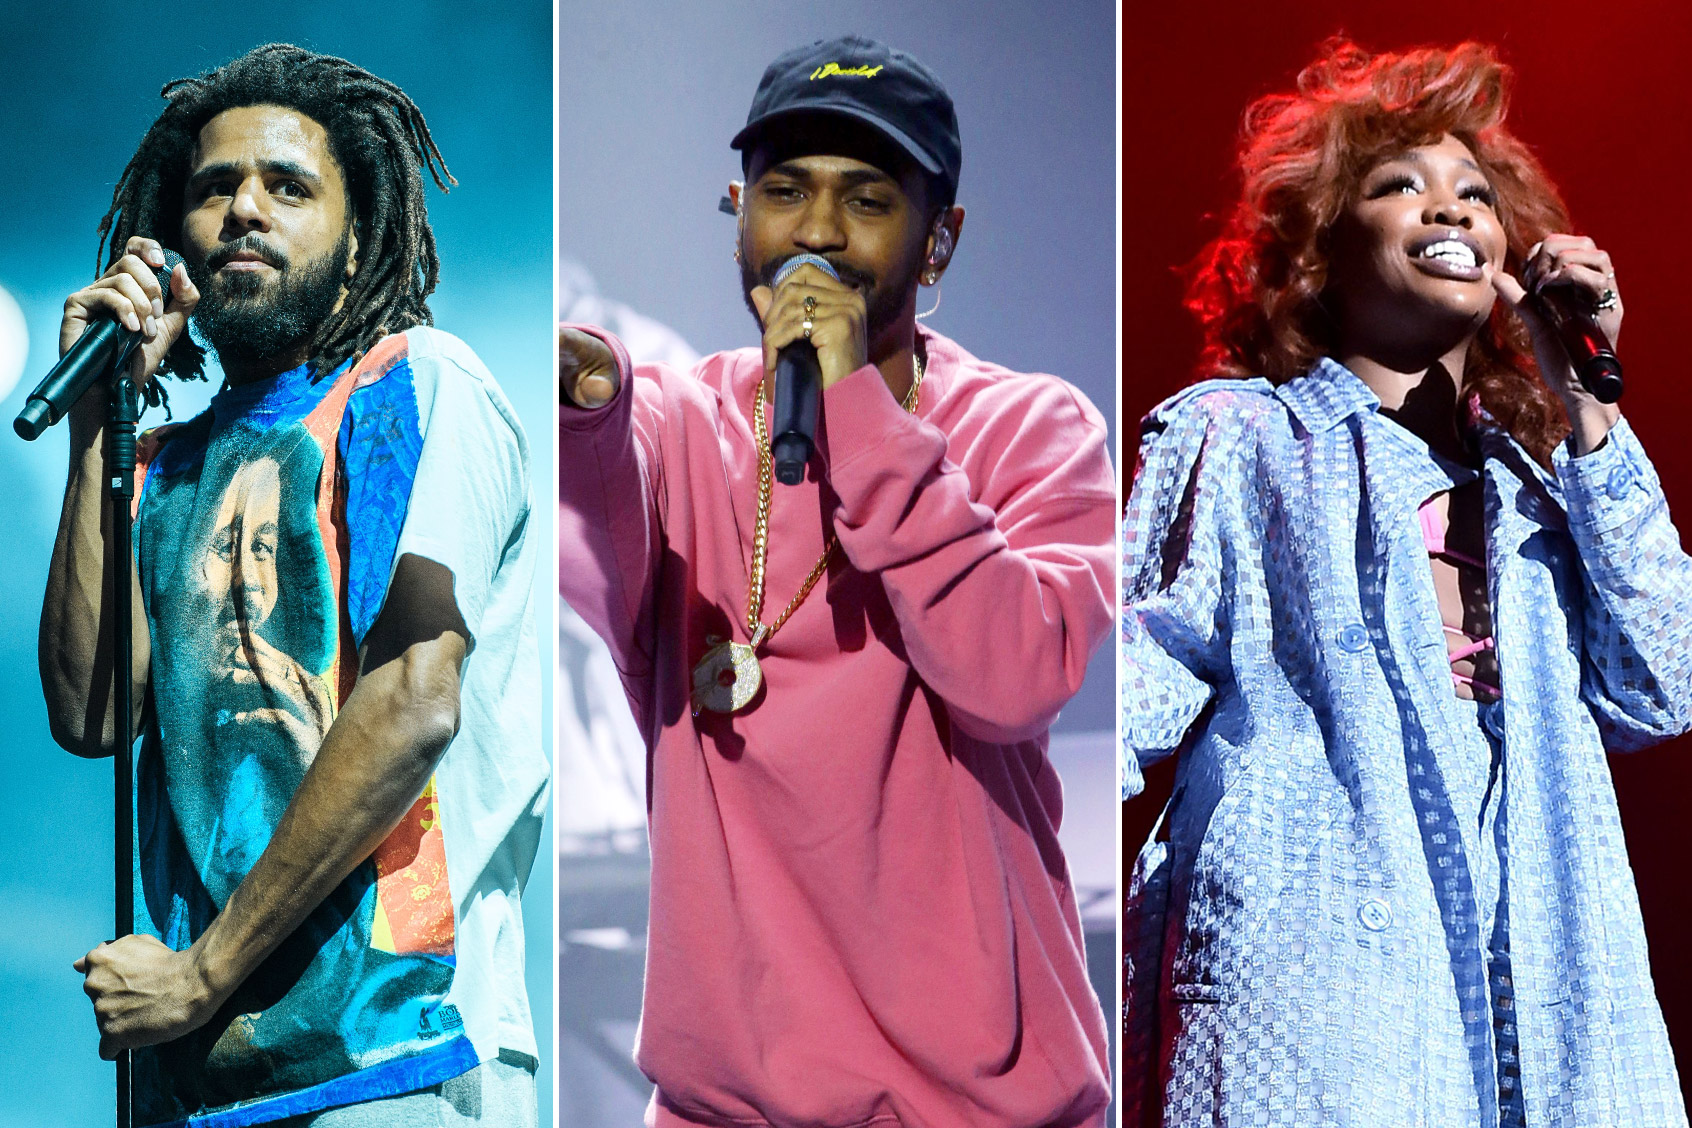 J. Cole Reveals Lineup for Inaugural Dreamville Festival With 21 Savage, SZA, Big Sean